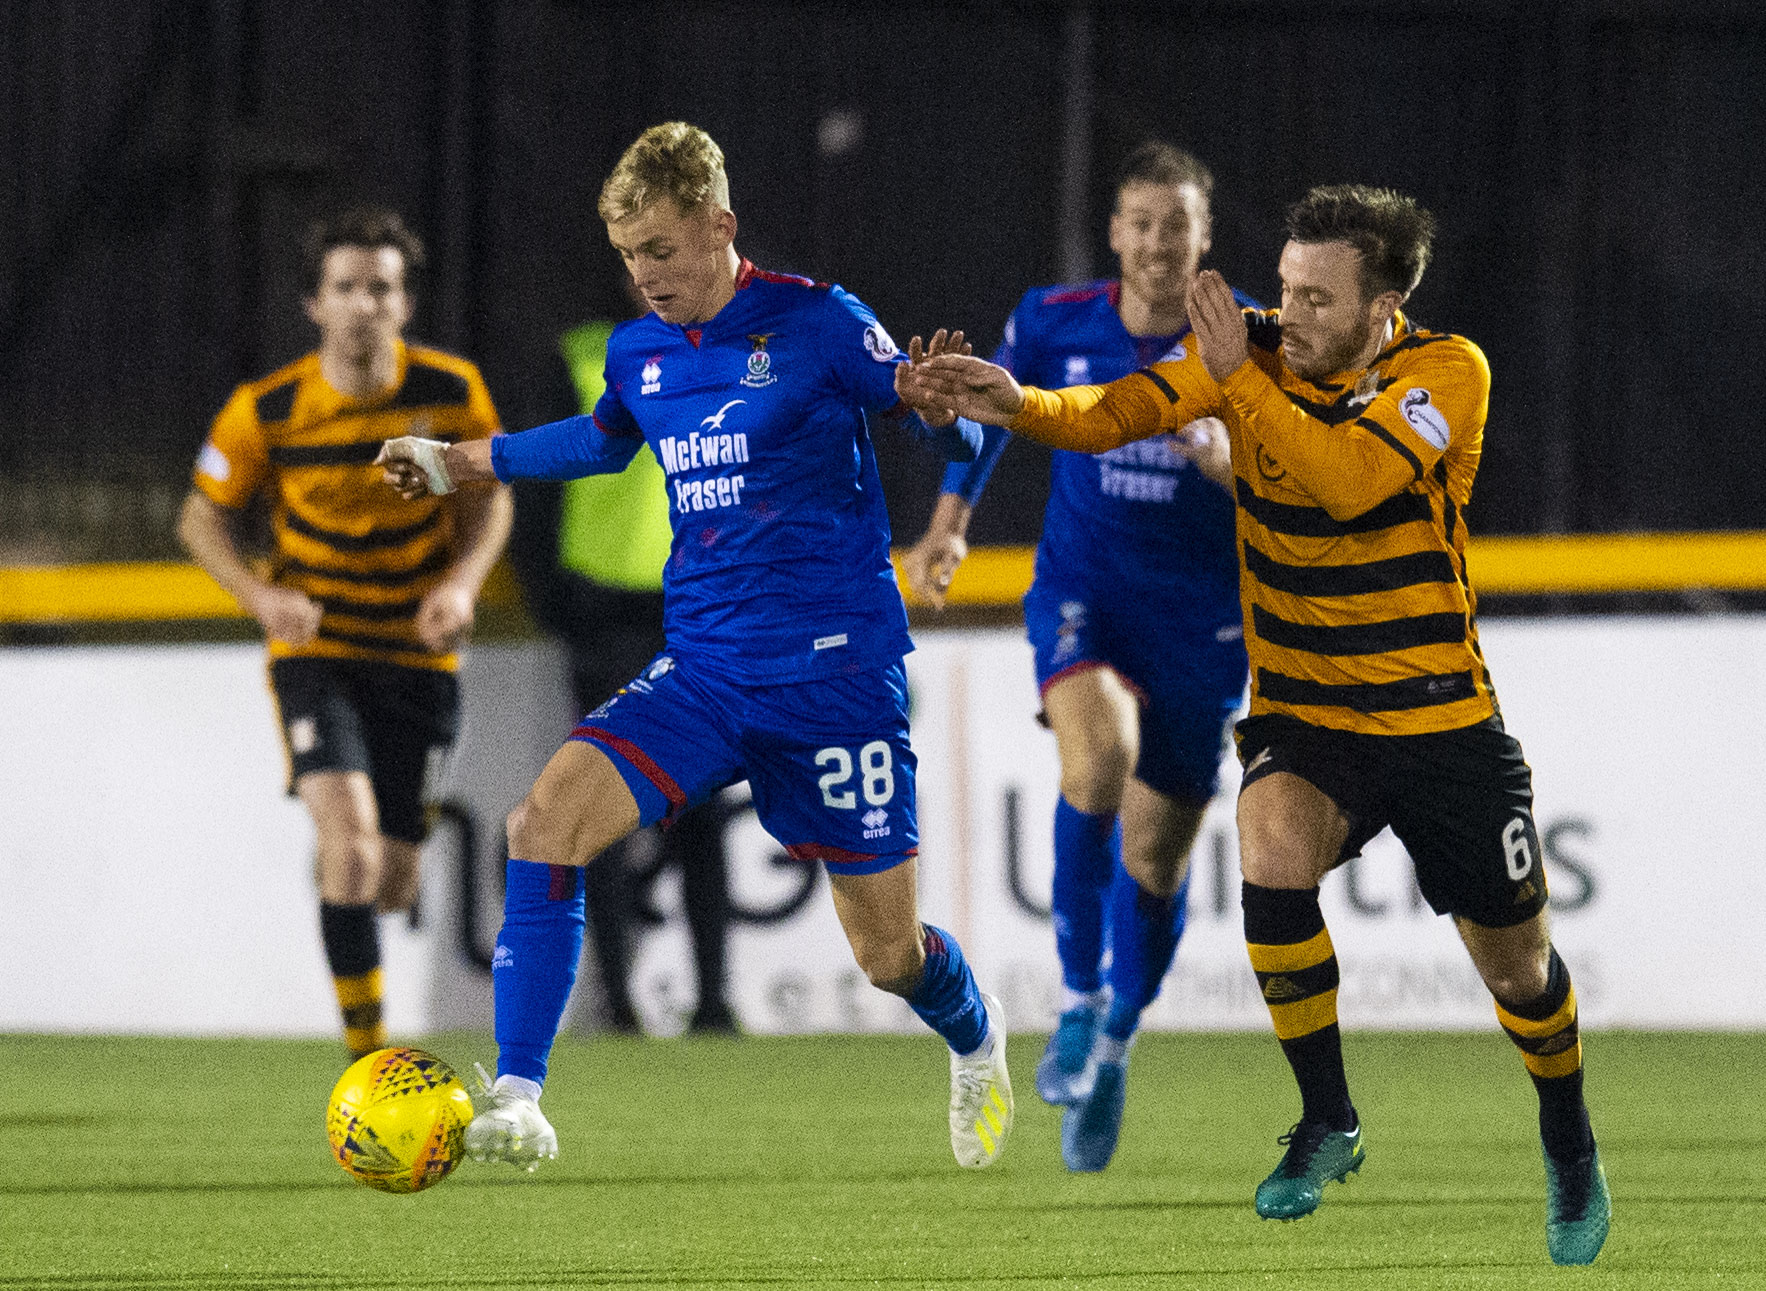 Roddy MacGregor playing against Alloa.